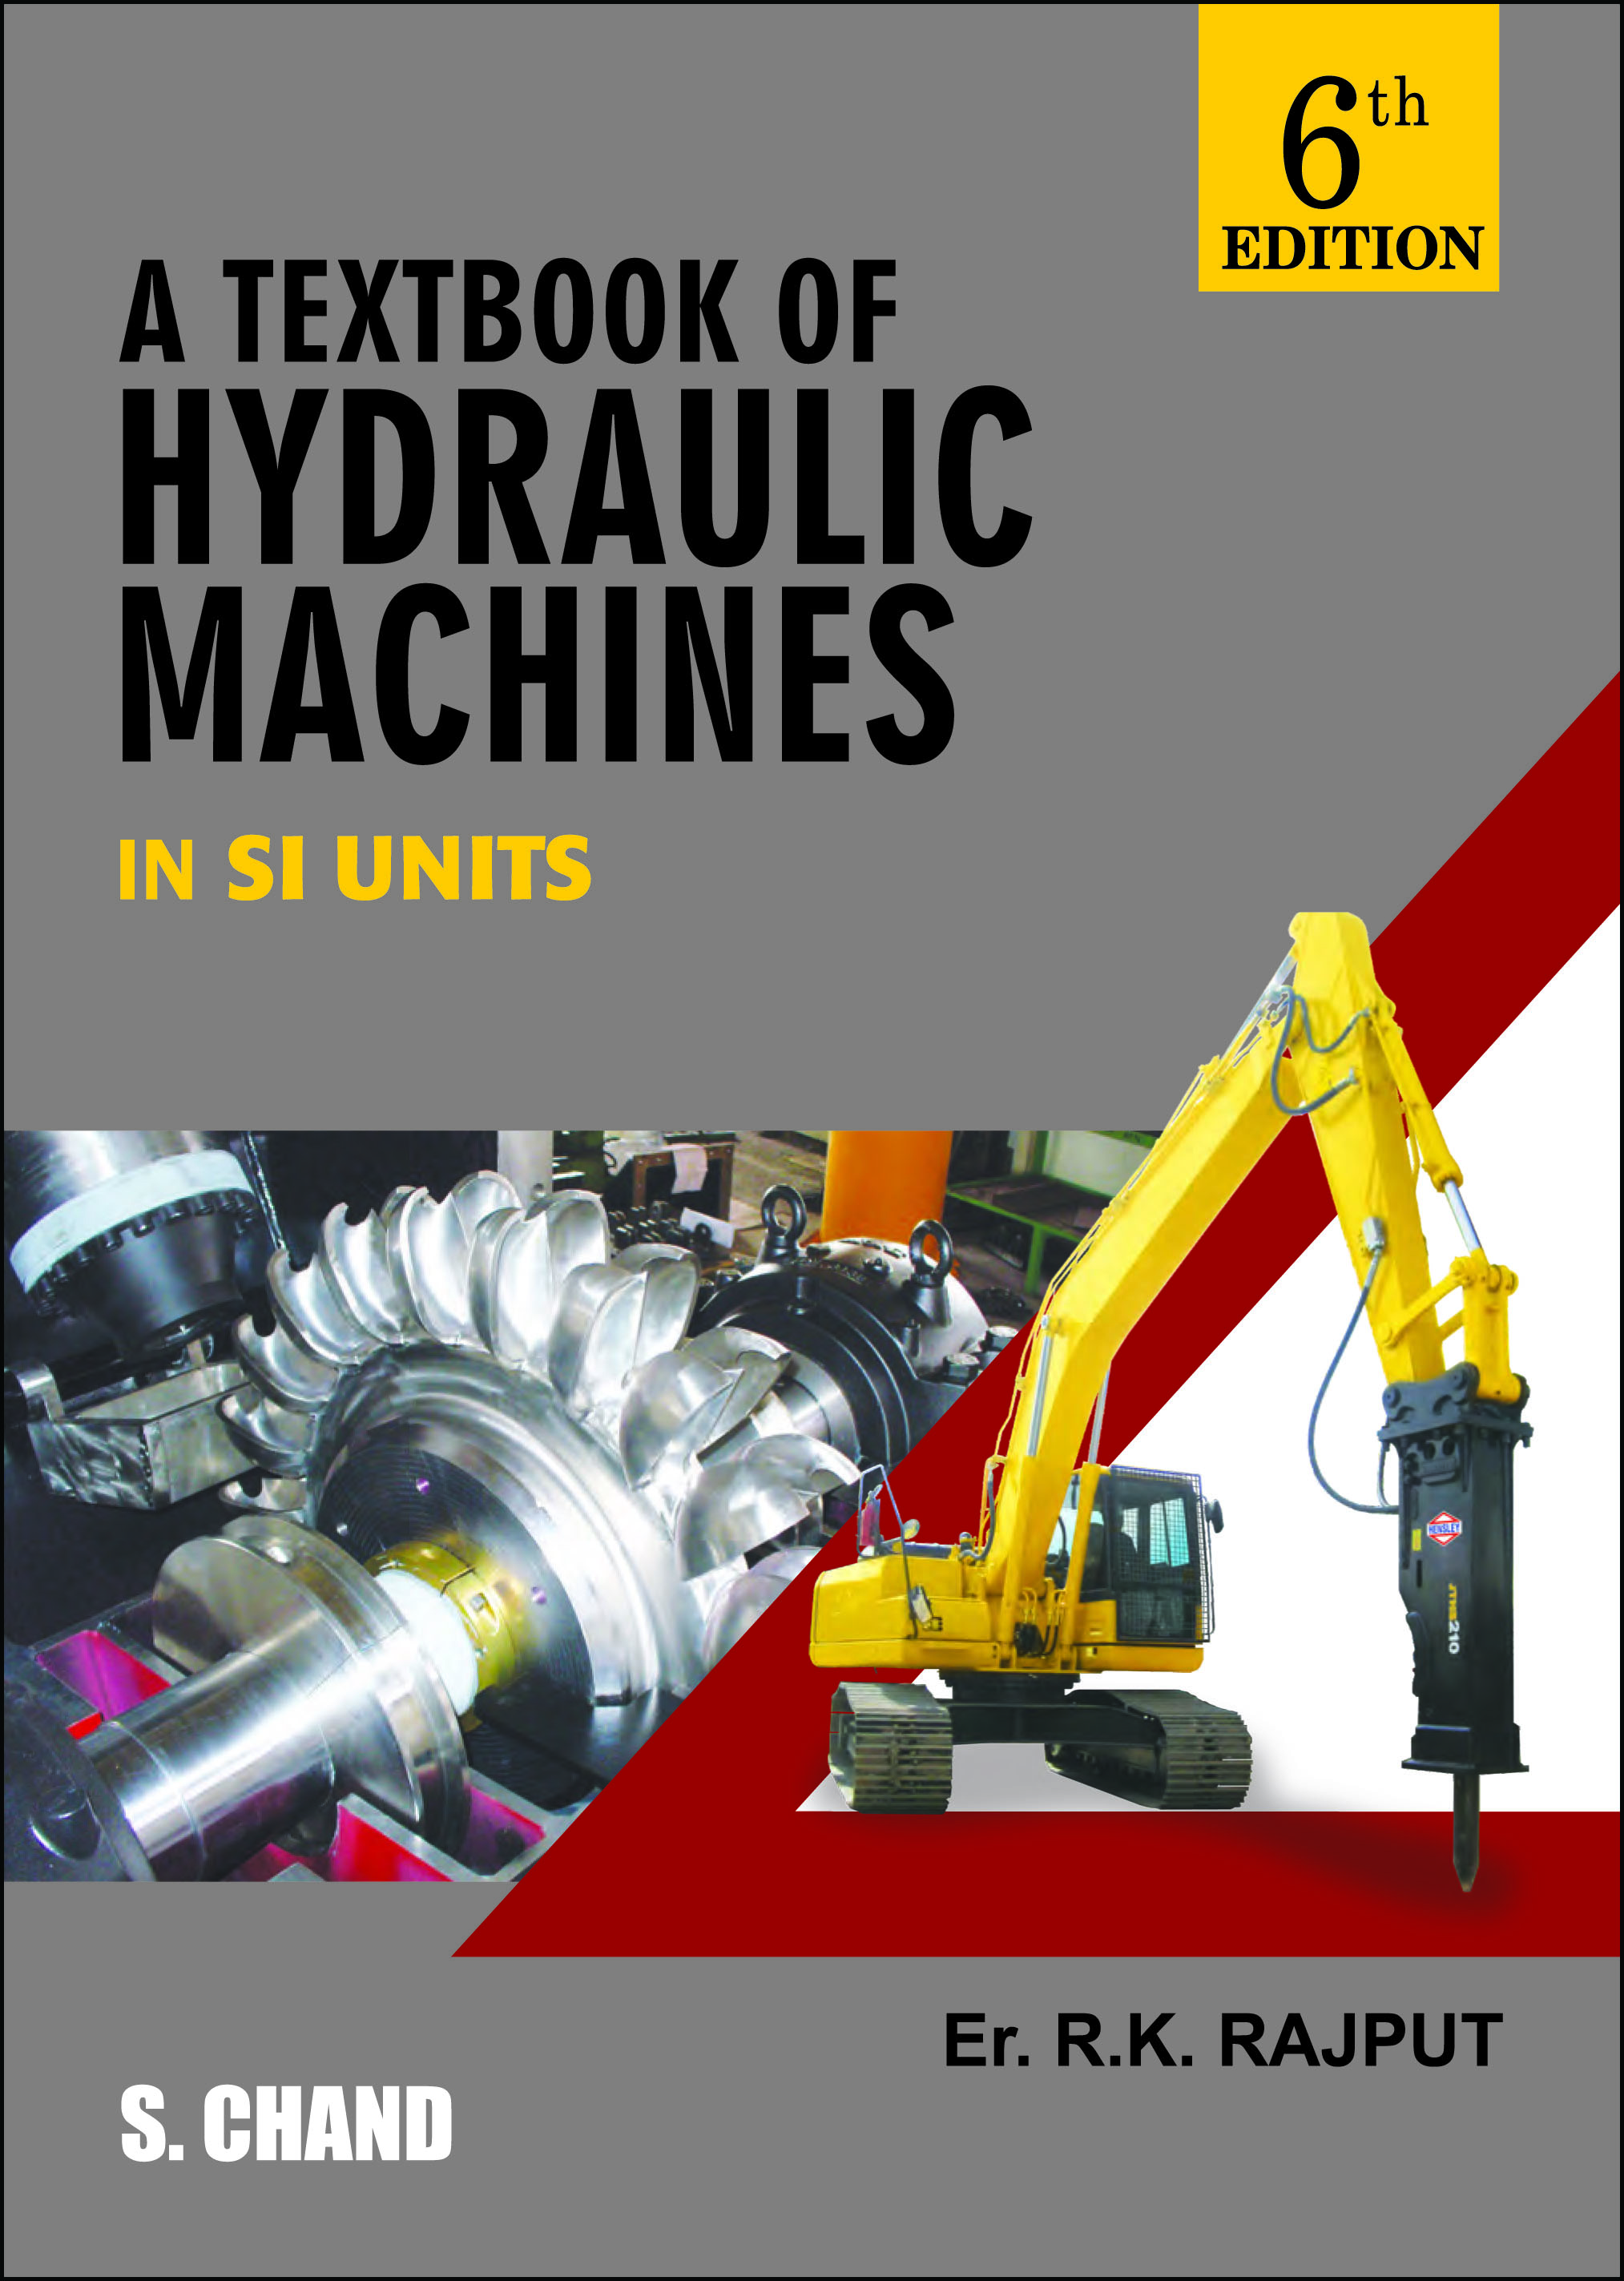 Machine Hydraulic A Textbook Of Hydraulic Machines By Er R K Rajput